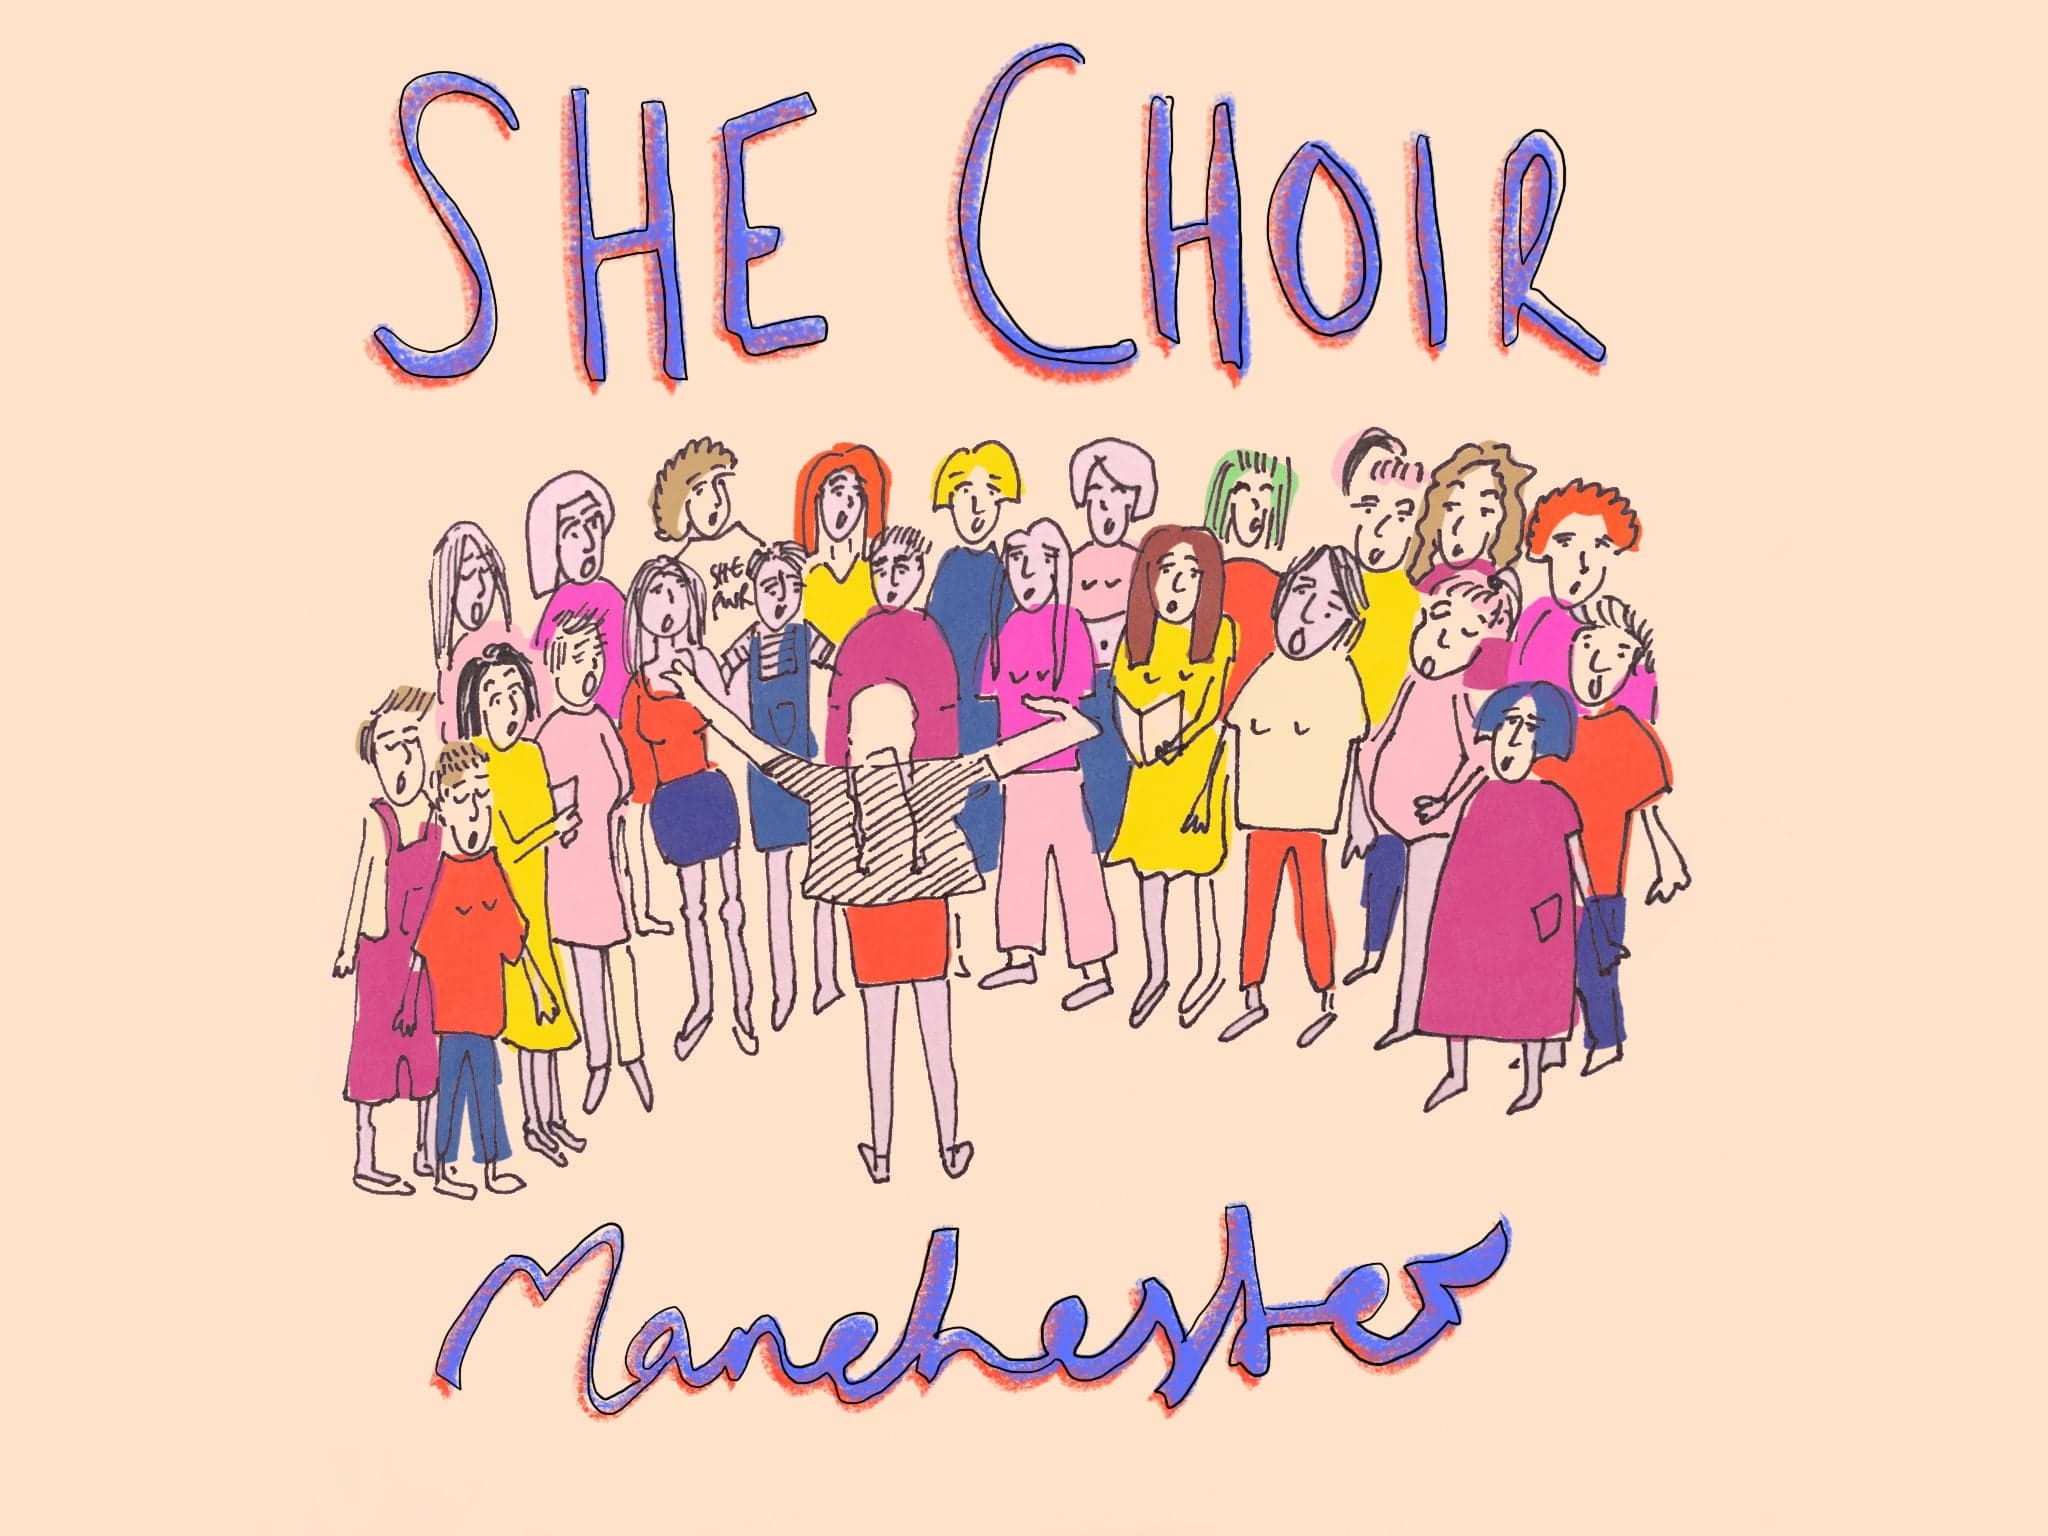 A NIGHT OF ENTERTAINMENT - Thursday 26th September, 7-9pmJoin She Choir at Old Bank Residency for a free and fun-filled evening of SHEs, tees and hobbies and witness the variety of talents that SHE members have to offer at our special OBR event, supported by NOMA.